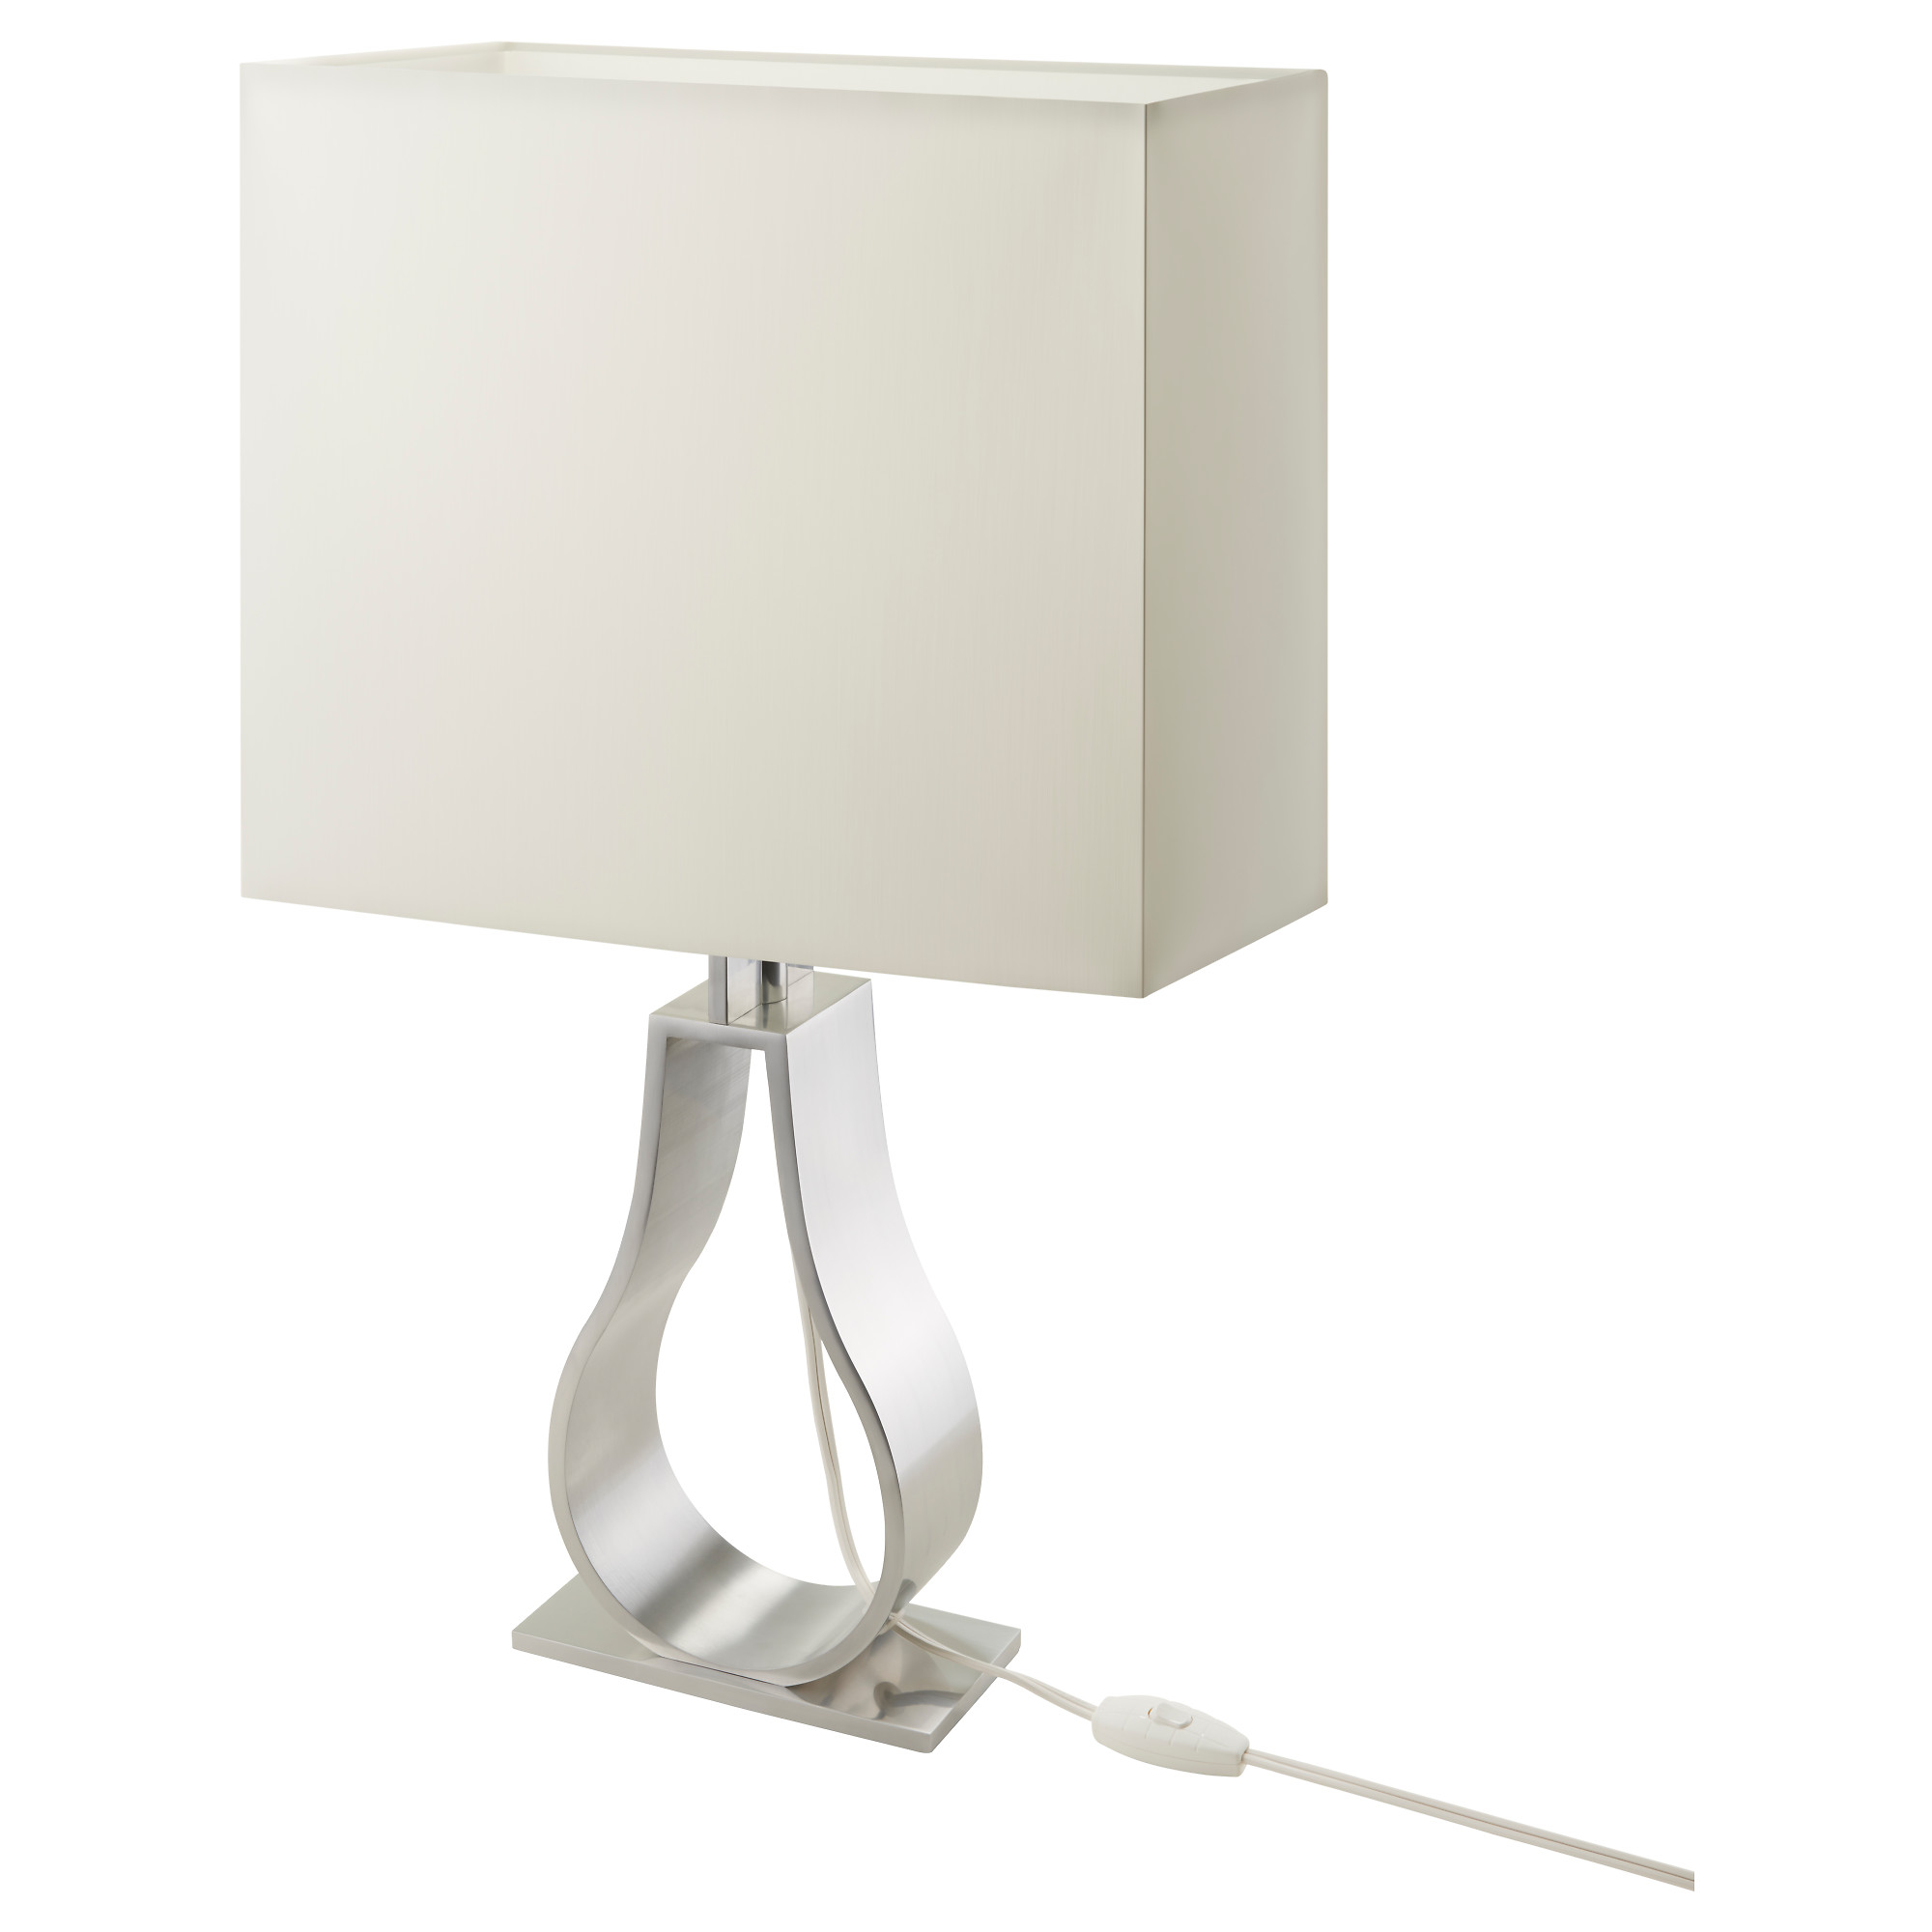 Modern white table lamp enhance the style of your room warisan modern white table lamp enhance the style of your room geotapseo Images